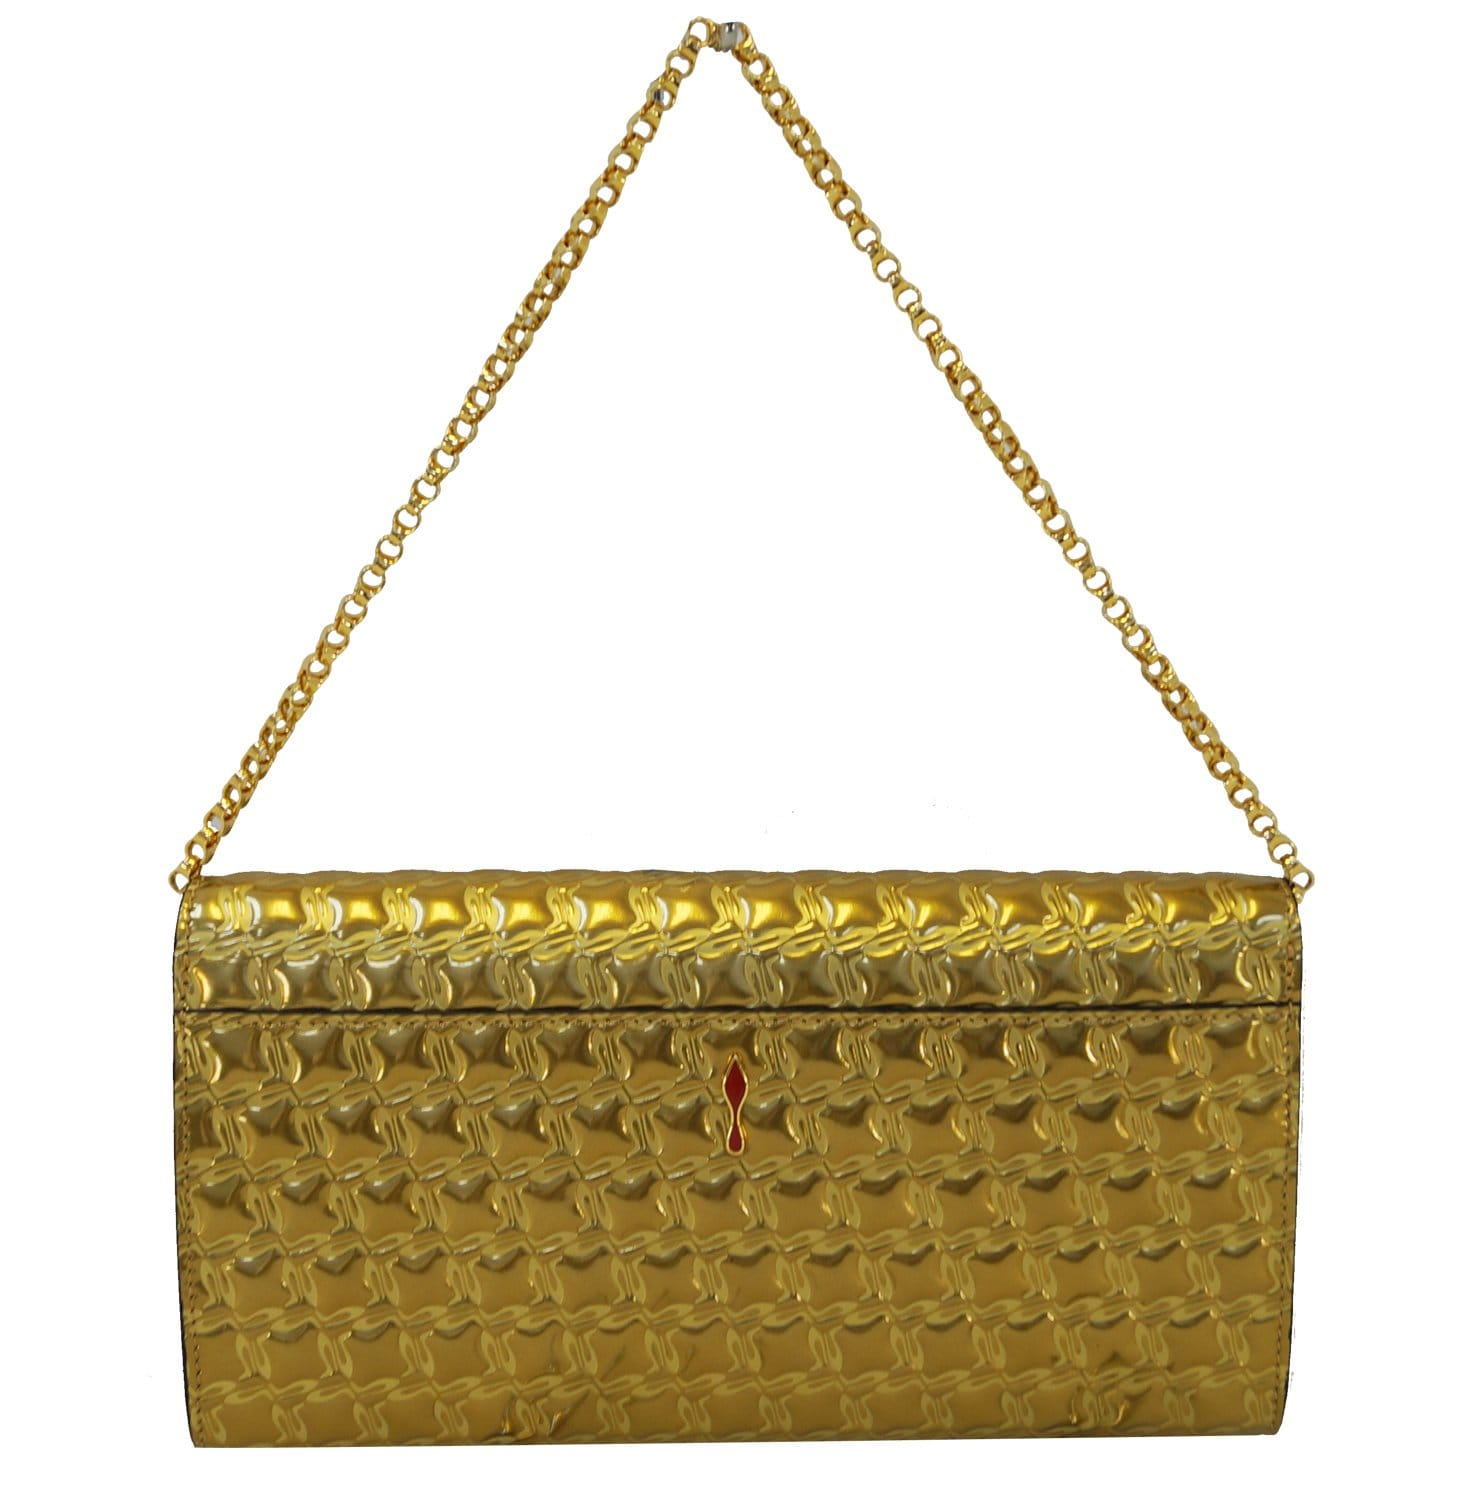 ff7863766e7 CHRISTIAN LOUBOUTIN Vero Dodat Gold Quilted Clutch Shoulder Bag - 30%